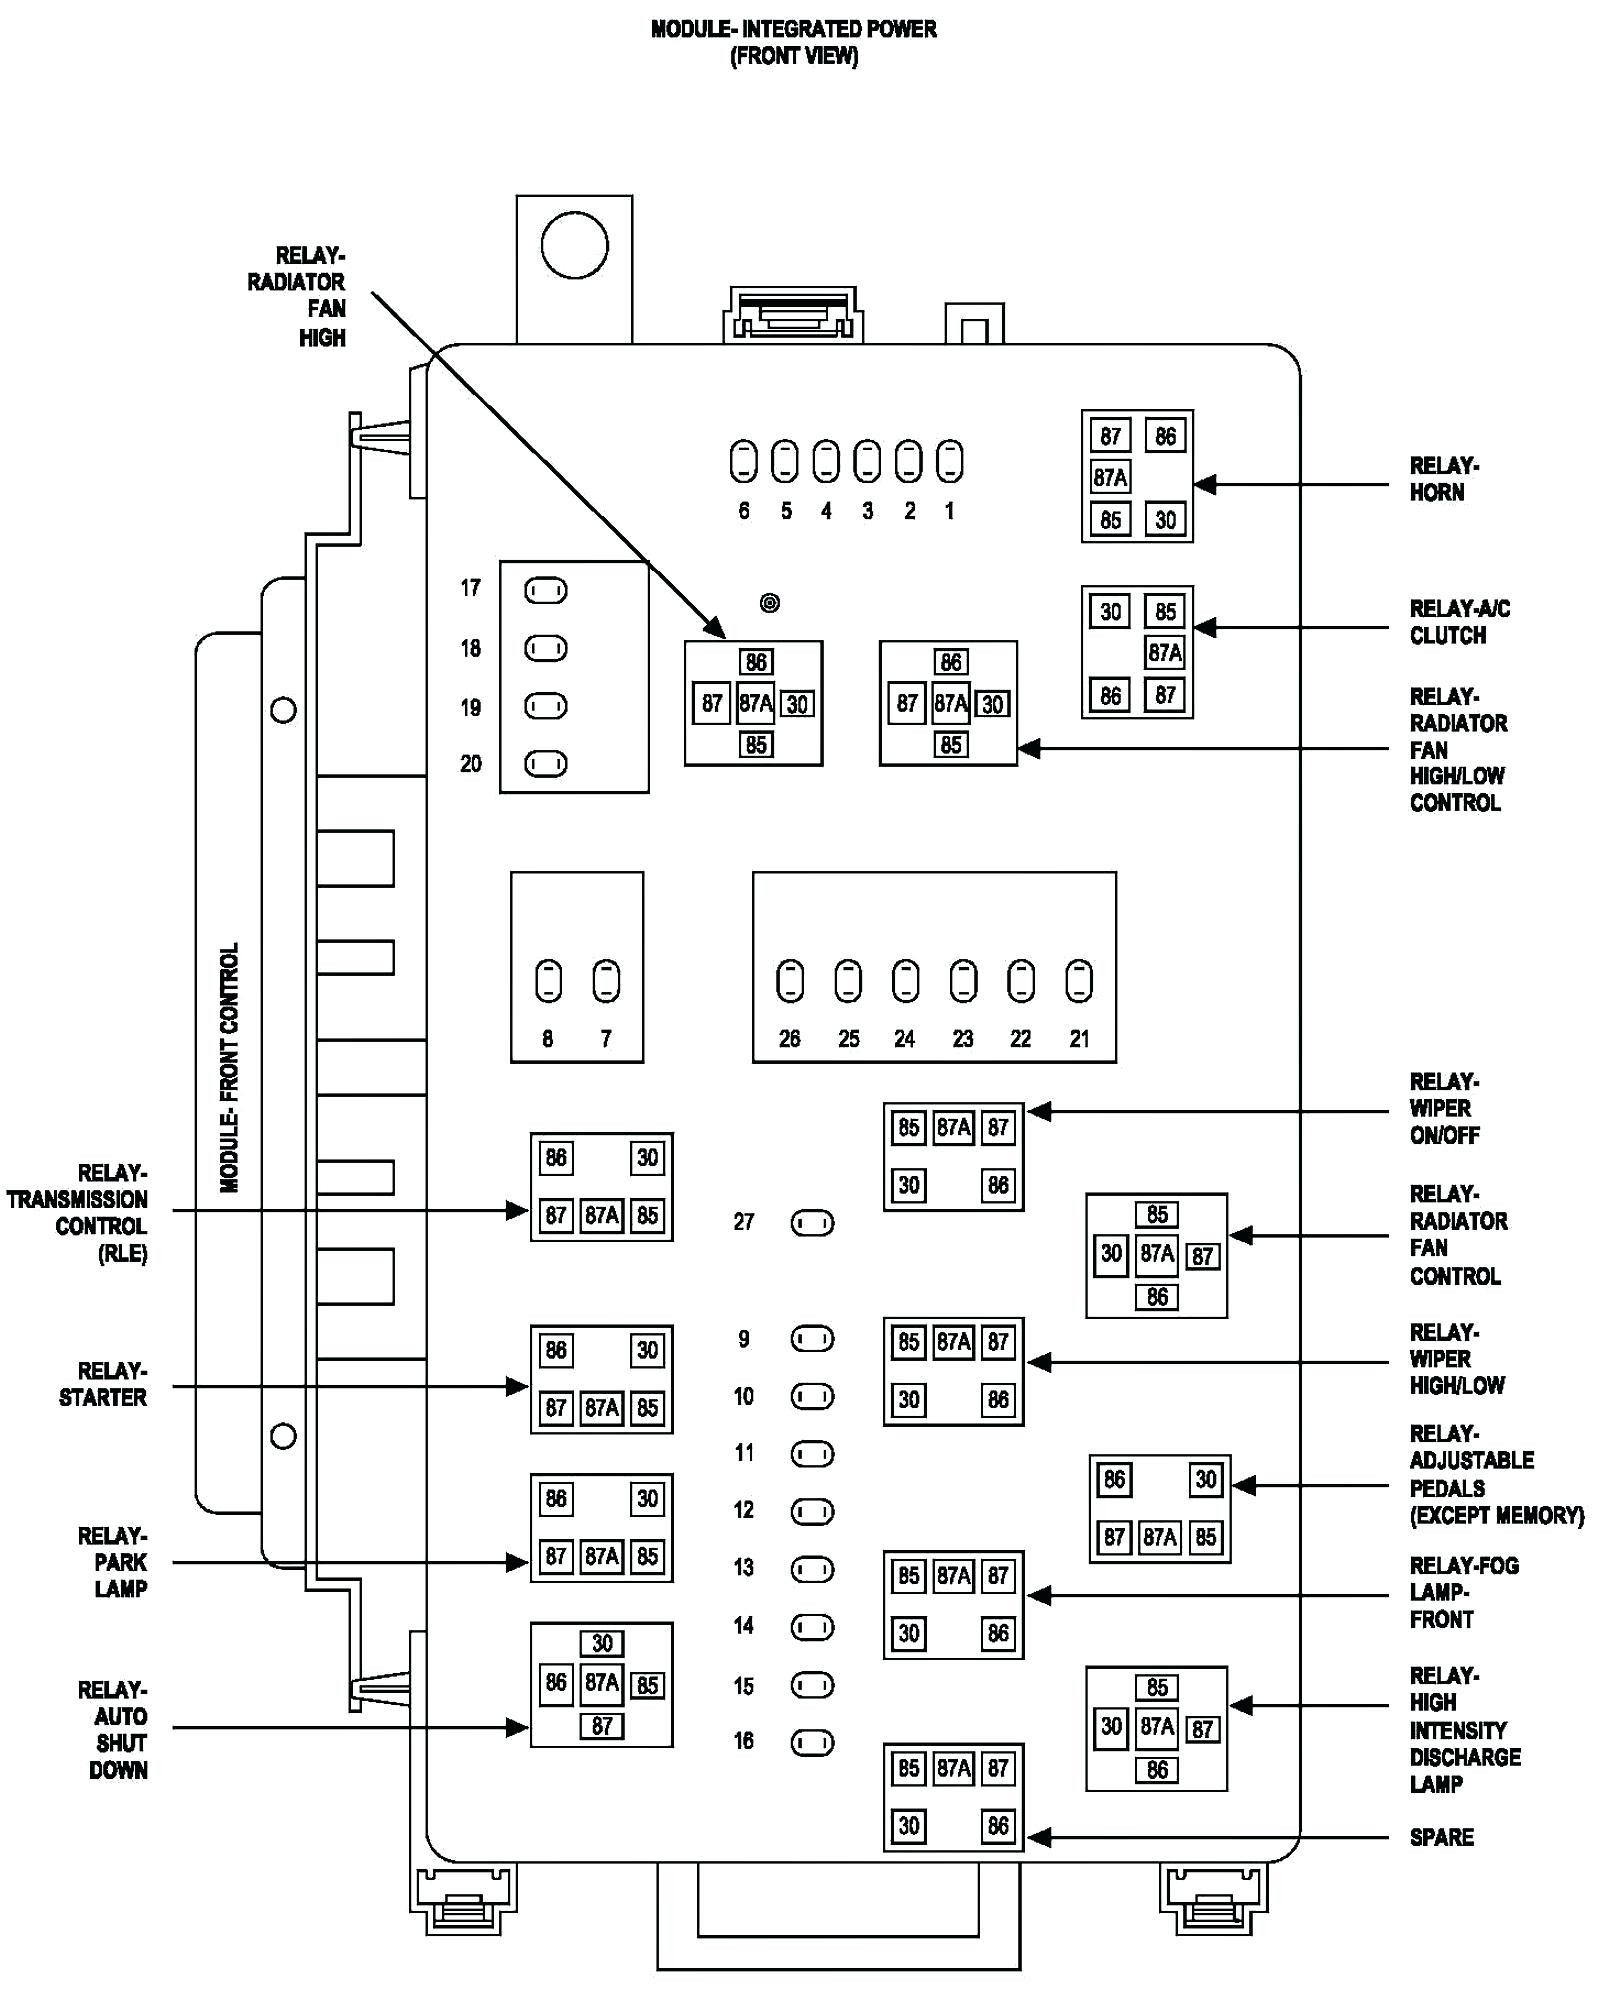 fuse box diagram 2007 chylser 300 2 7 fuel pump wiring diagram Chrysler 300 Shift Lock fuse box diagram 2007 chylser 300 2 7 fuel pump wiring diagram 2014 chrysler 300 fuse